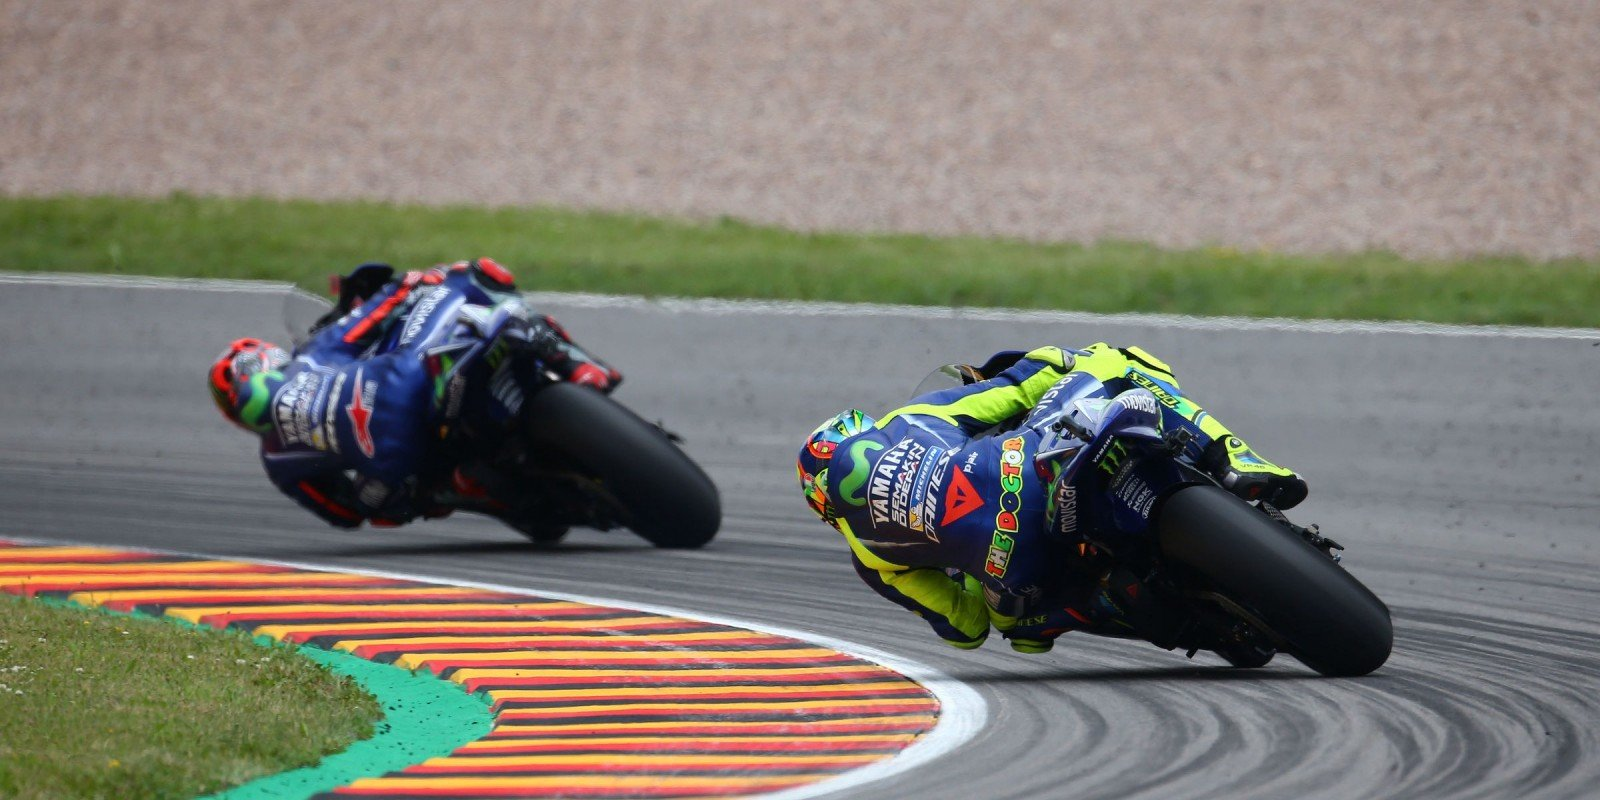 Action shots of our Monster riders at Sachsenring